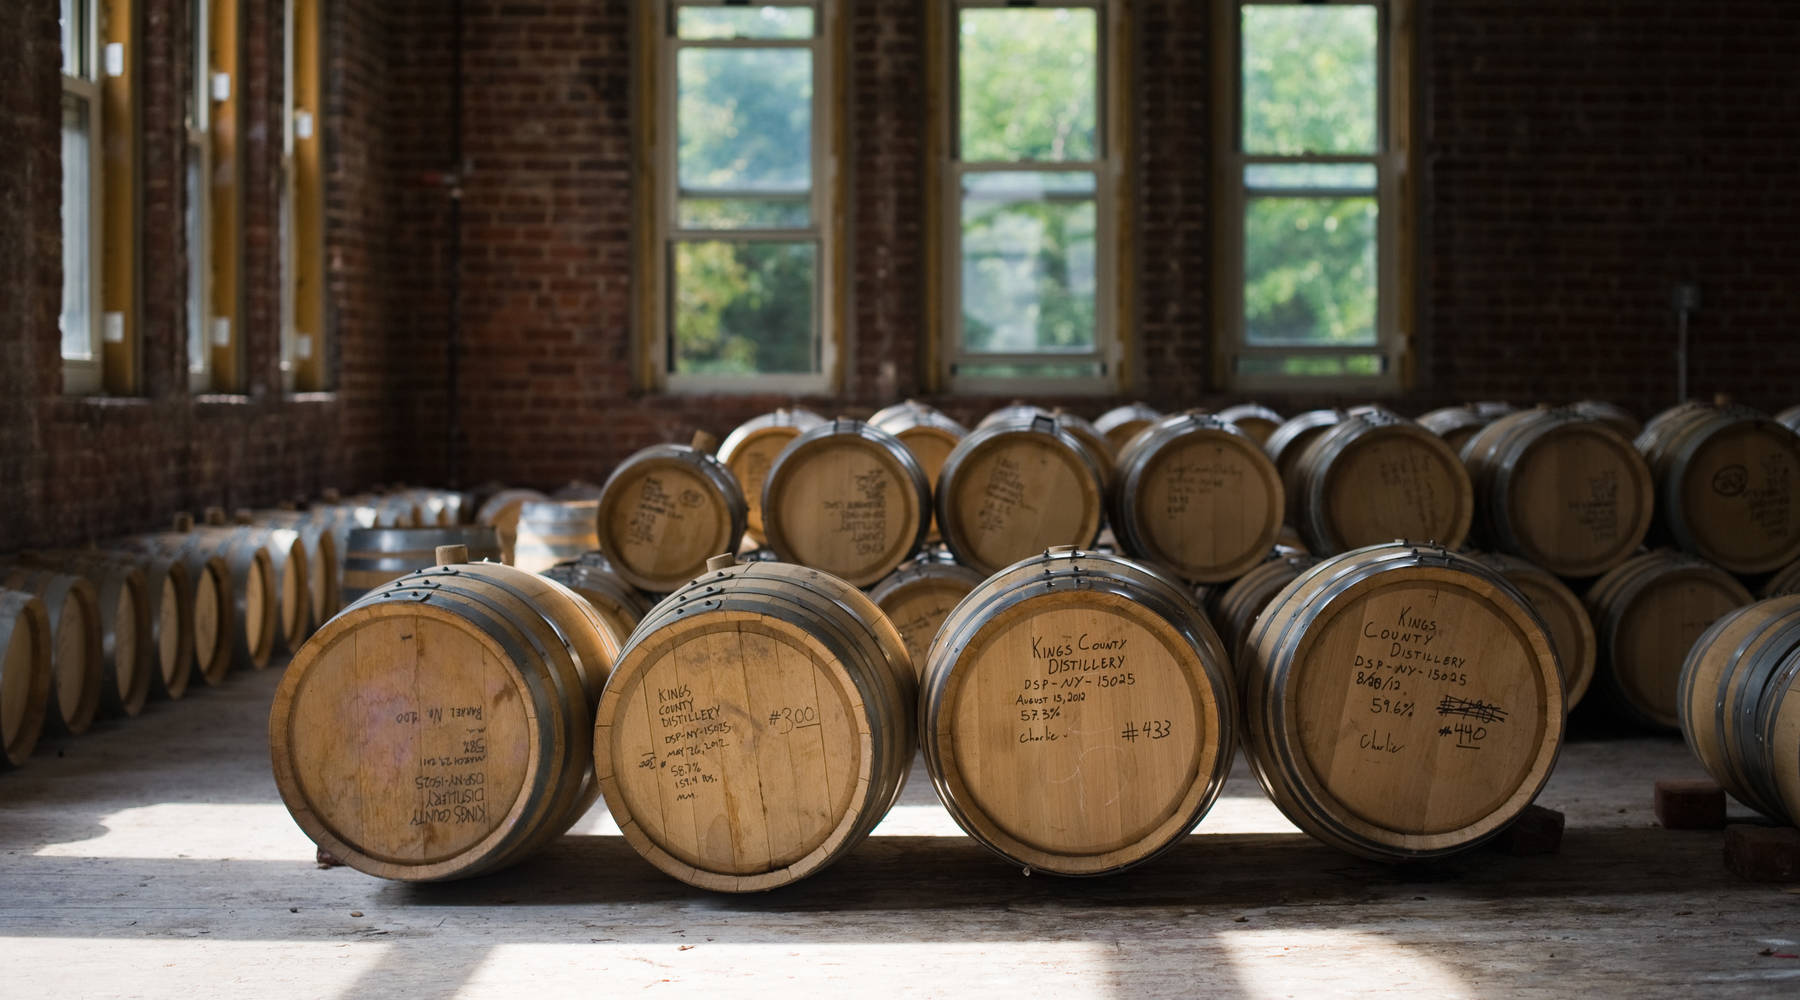 Whiskeys have to age for years, so how do distilleries make money